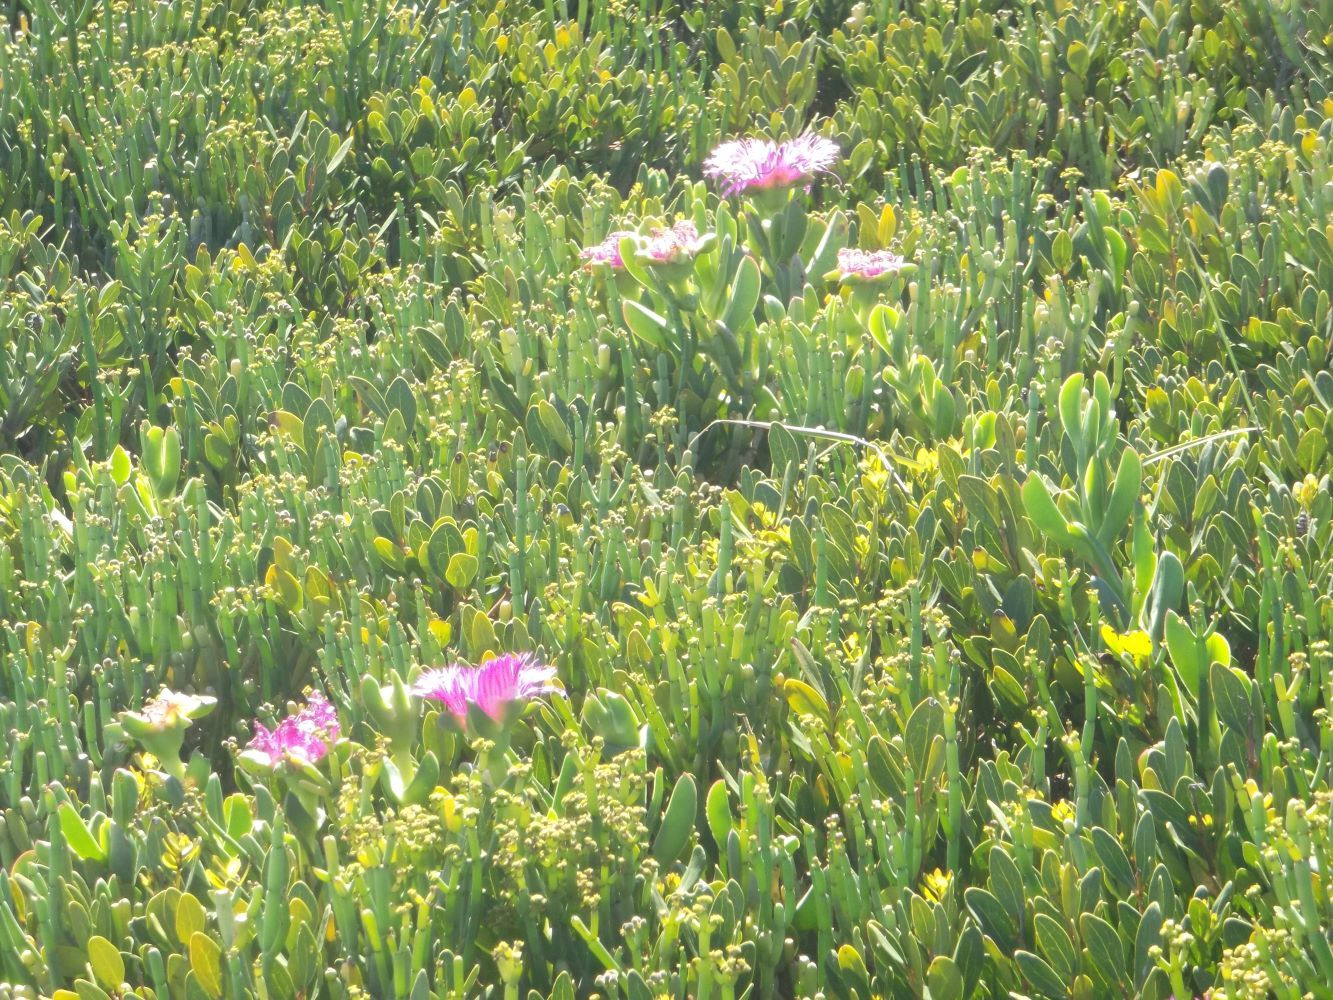 Carpobrotus deliciosus? growing on a dune near Haakgat in Cape Town in harmony with other plants.